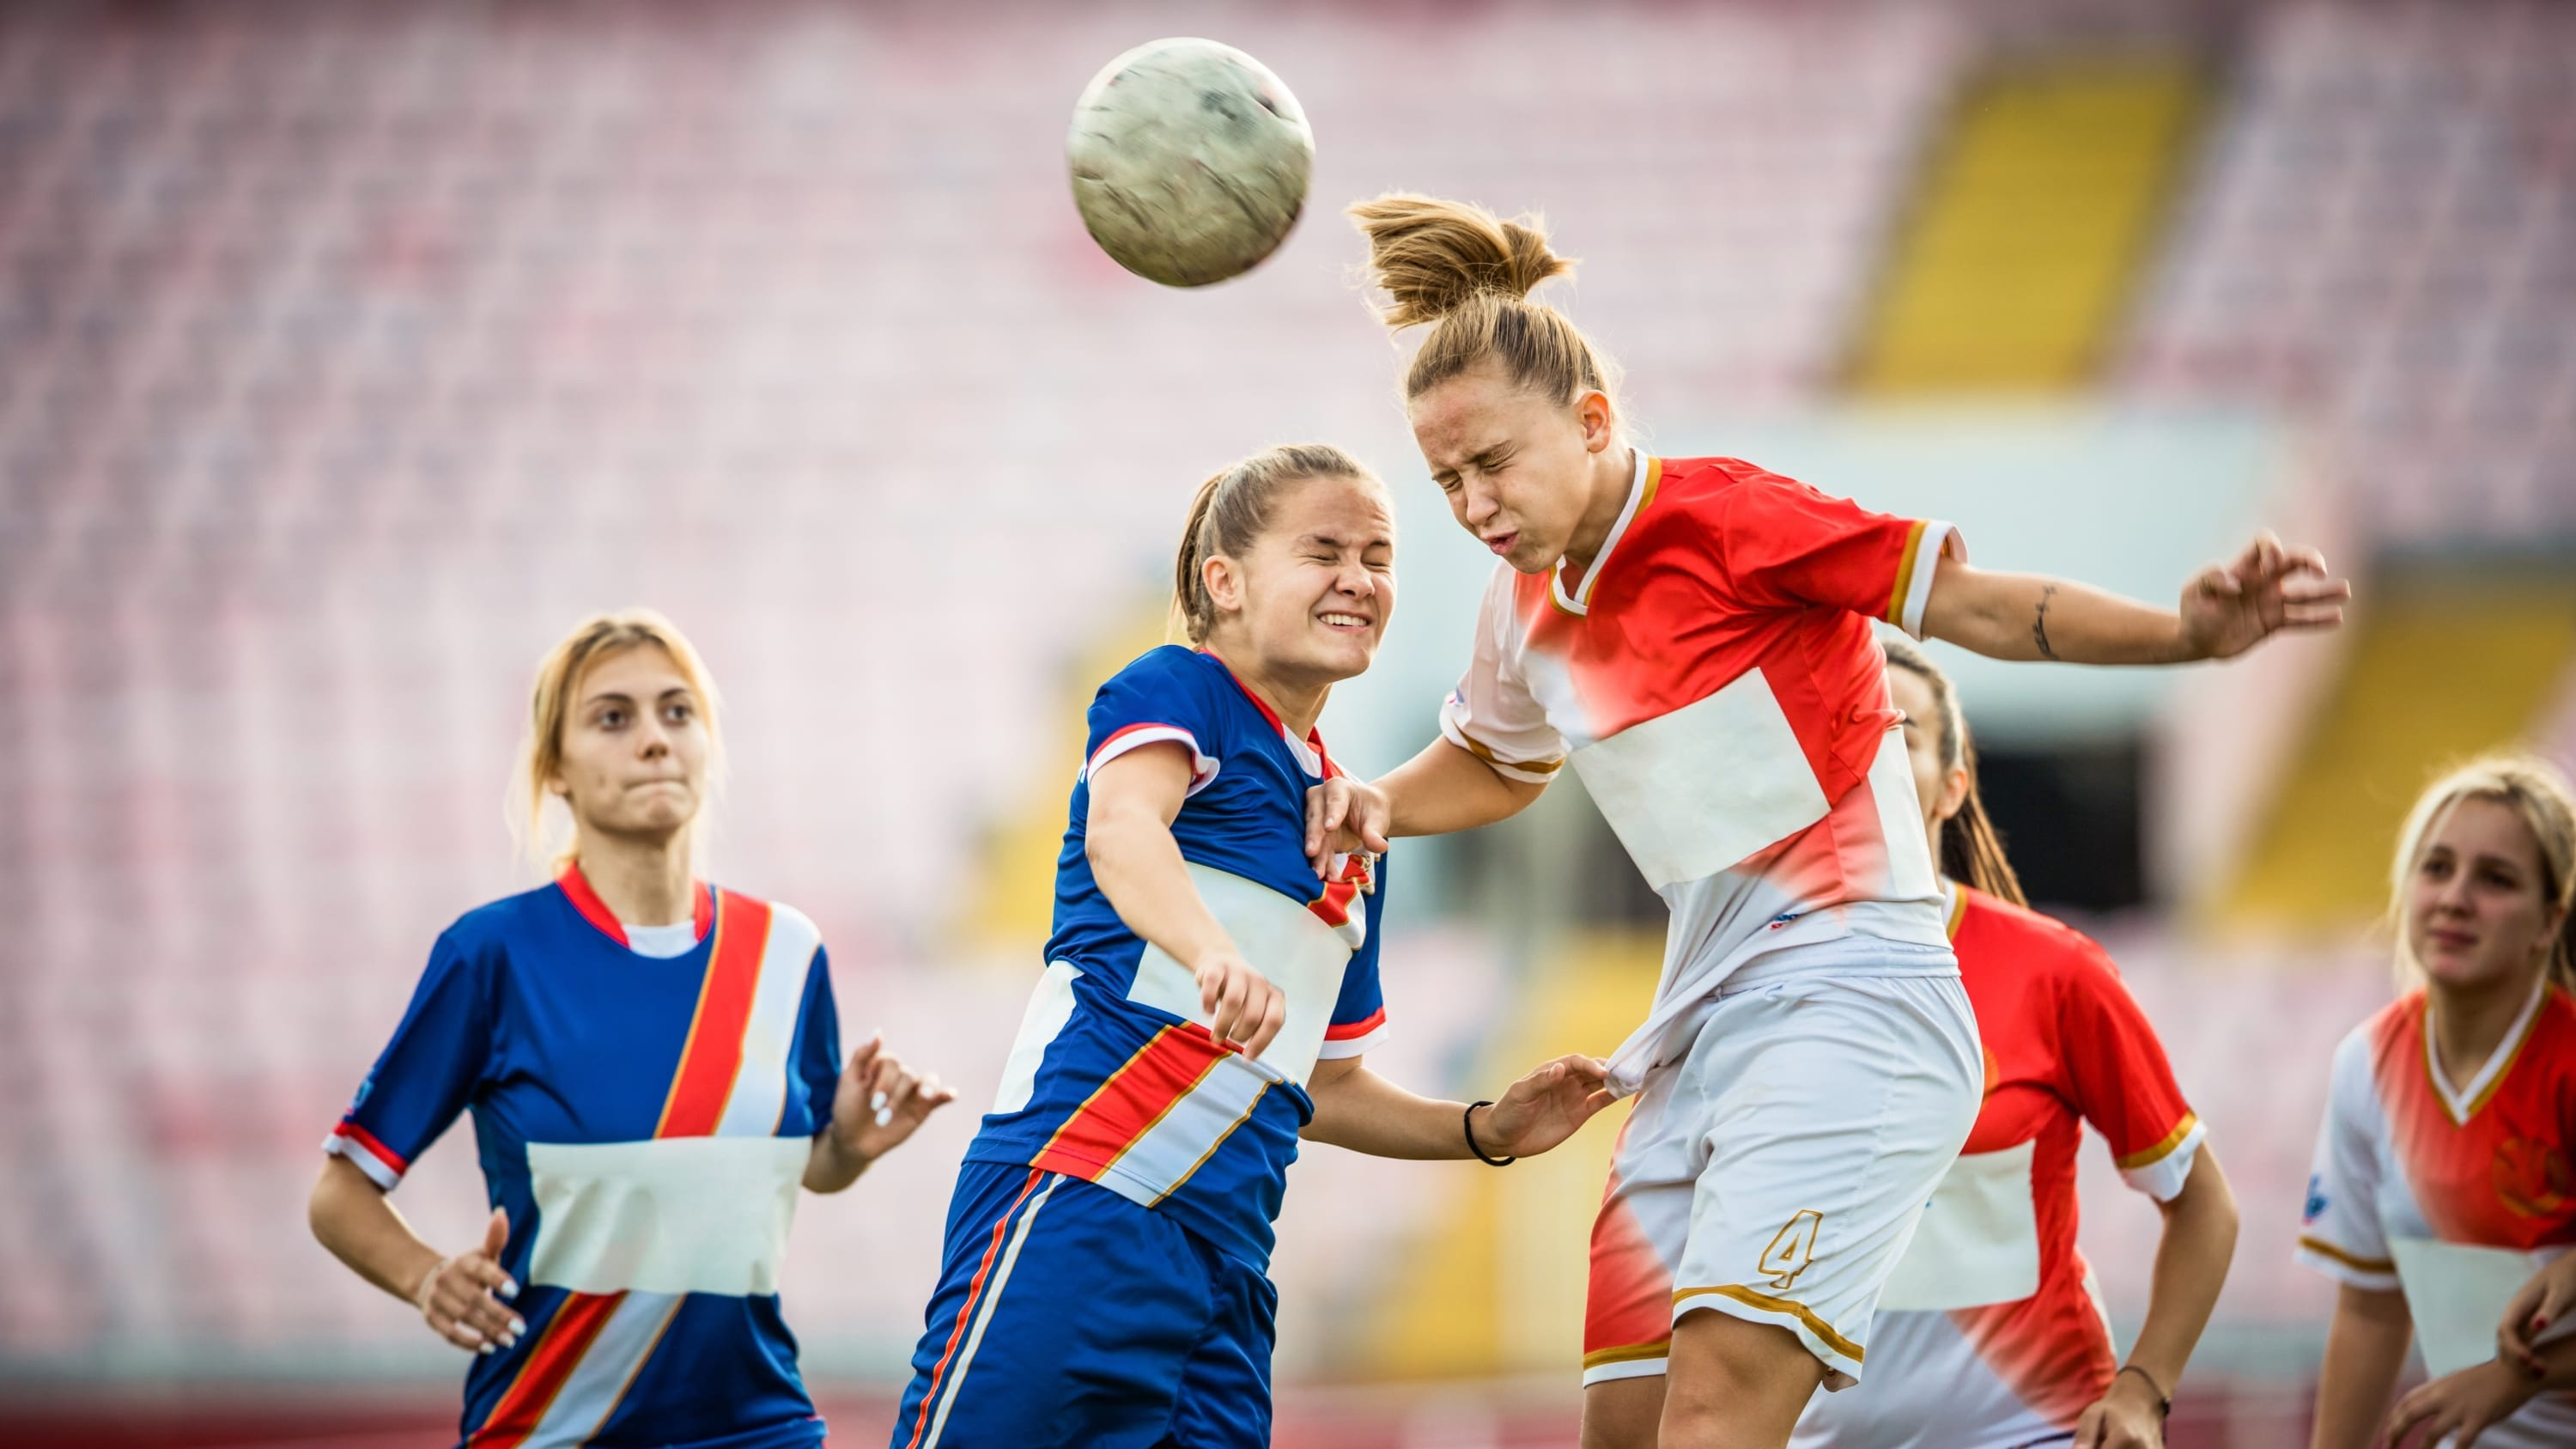 Two female soccer rivals heading the ball on a match, possibly at risk for concussion